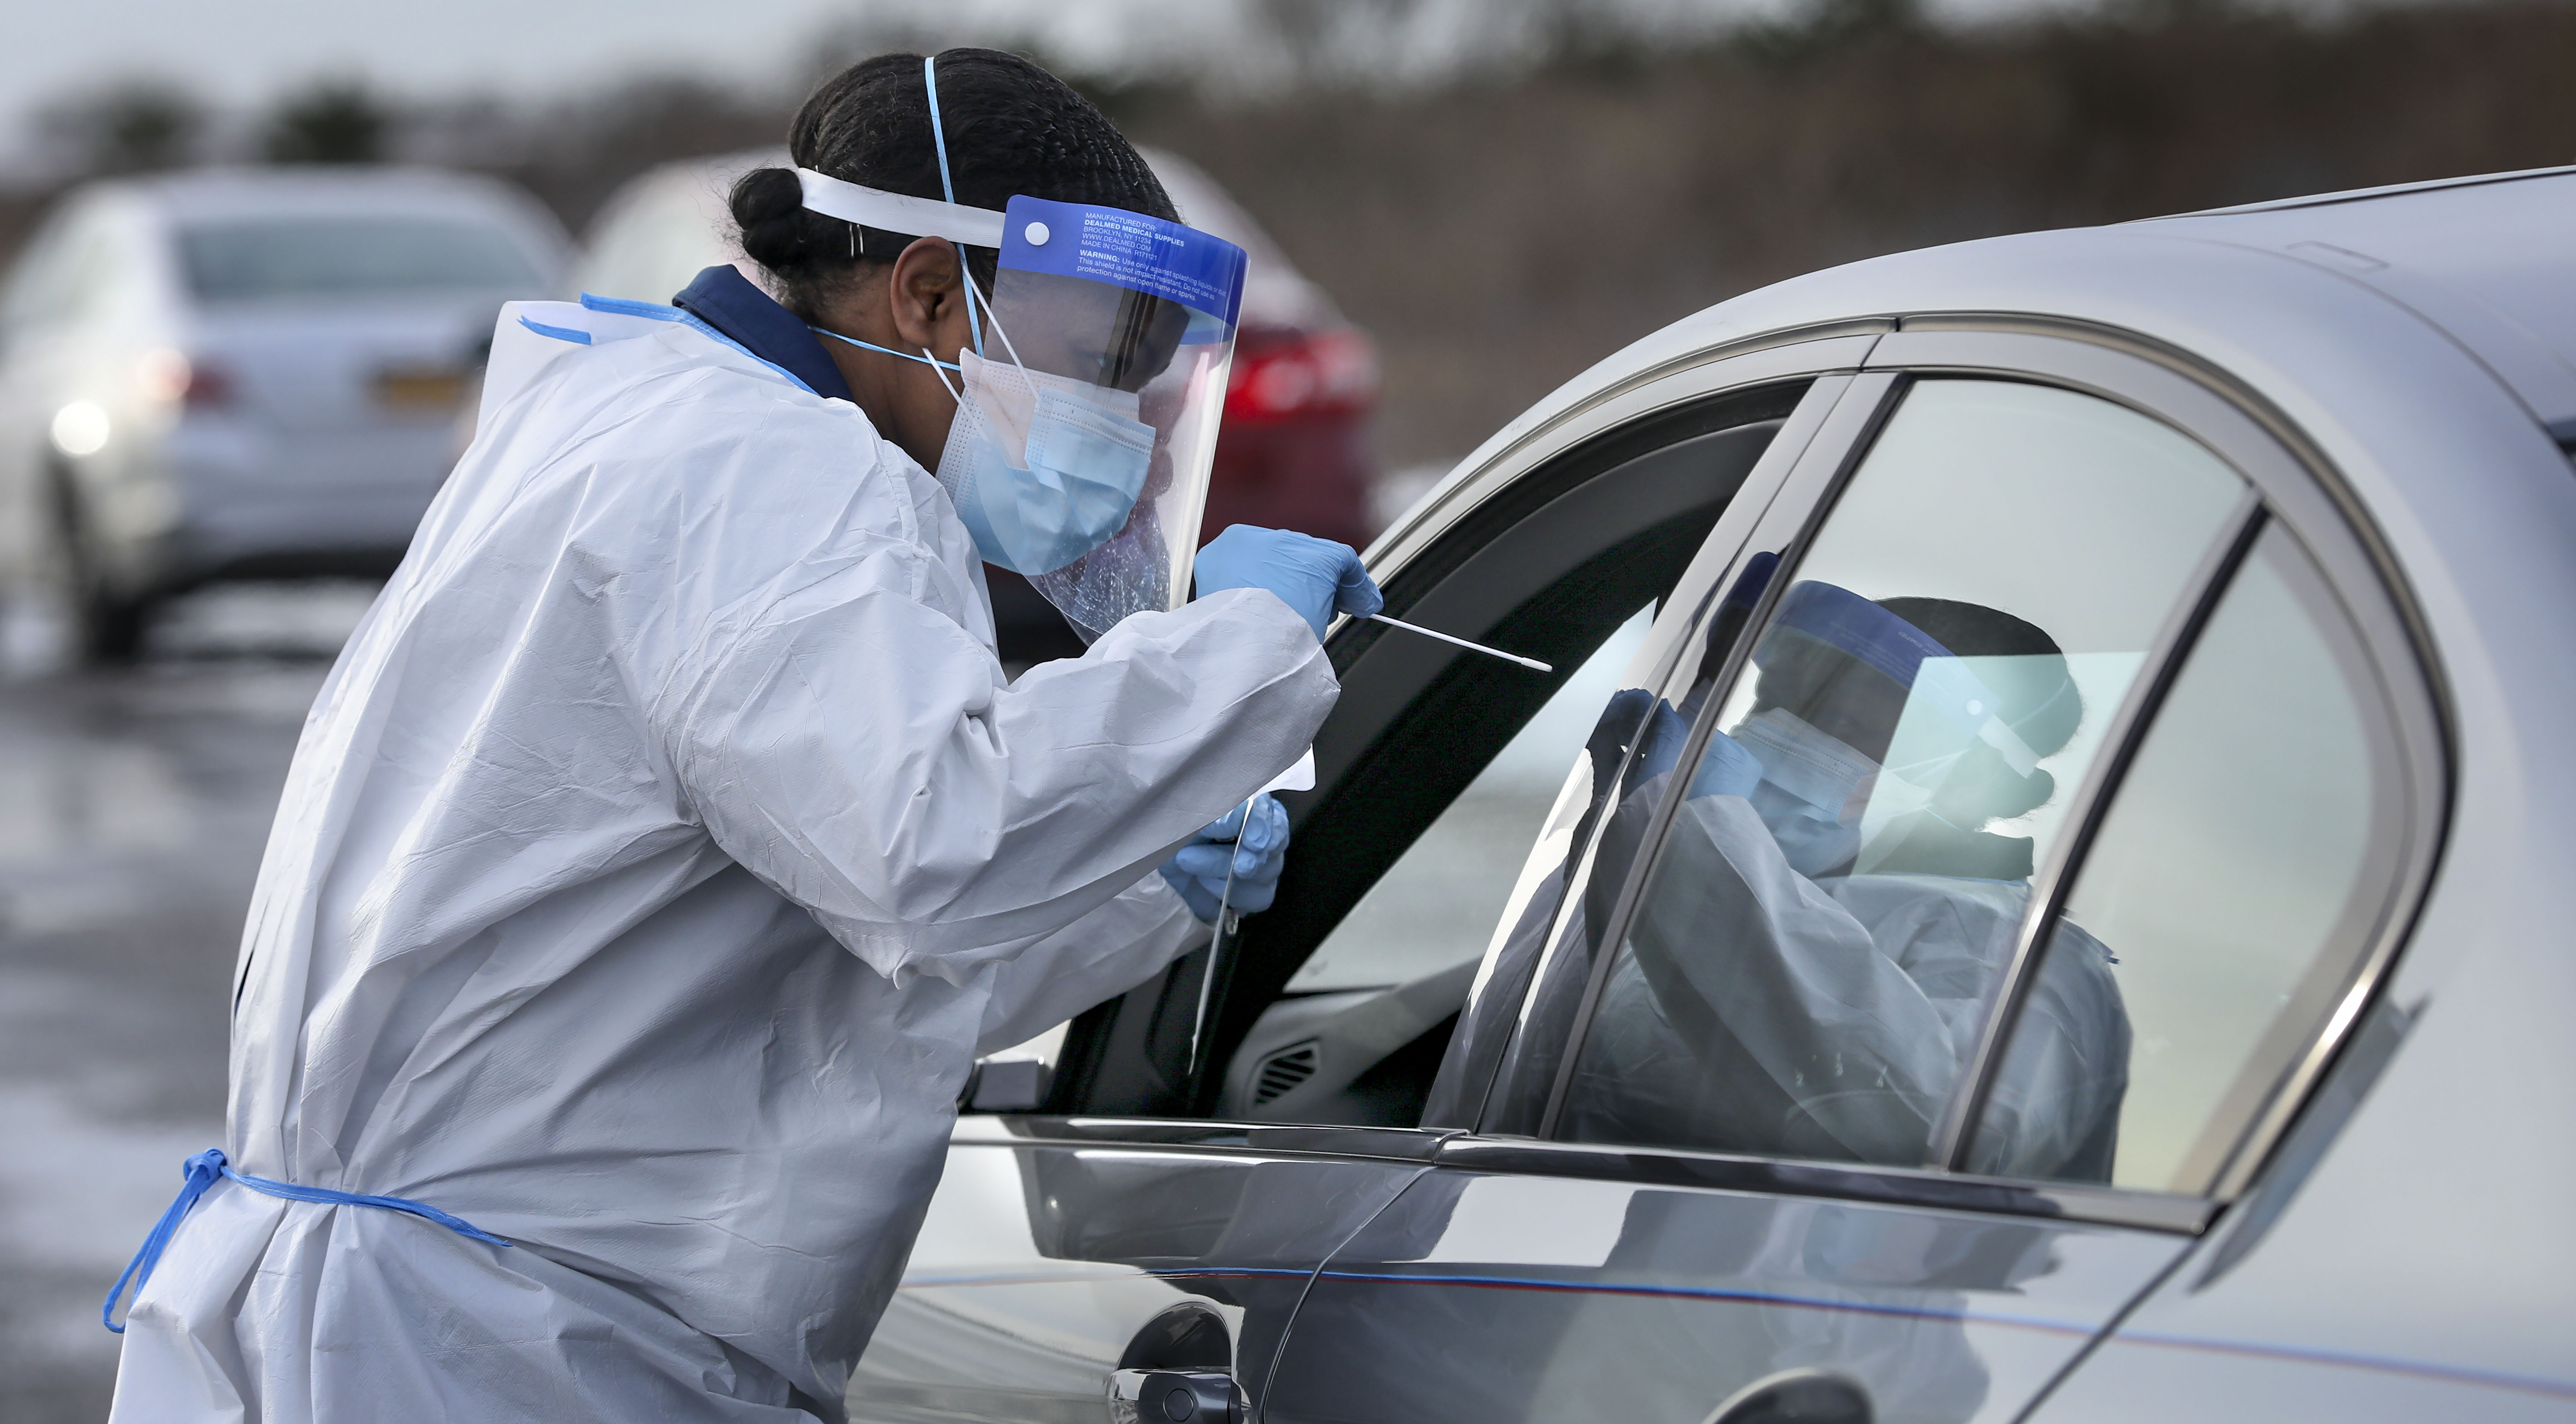 A nurse practitioner administers a Covid-19 swab test at a drive-thru testing site in Shirley, New York, on December 18, 2020.